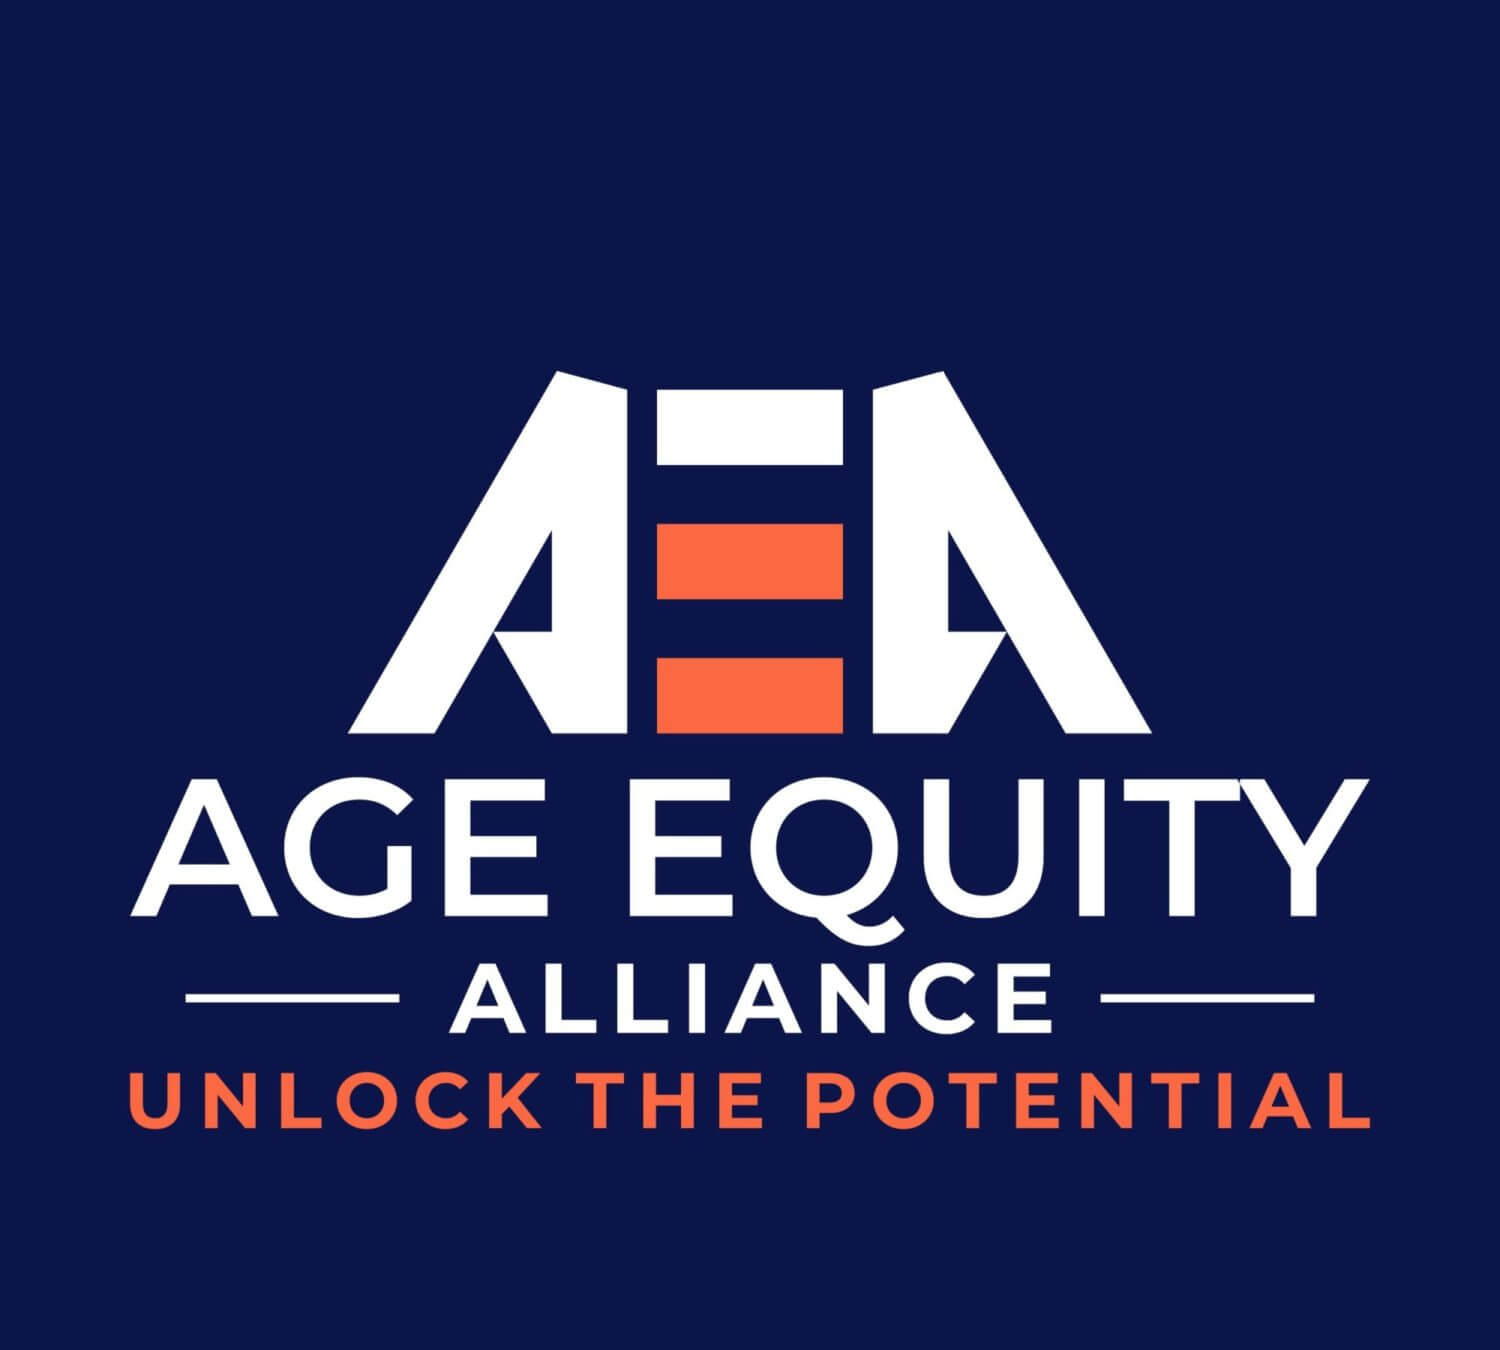 Age Equity Alliance--Unlock The Potential